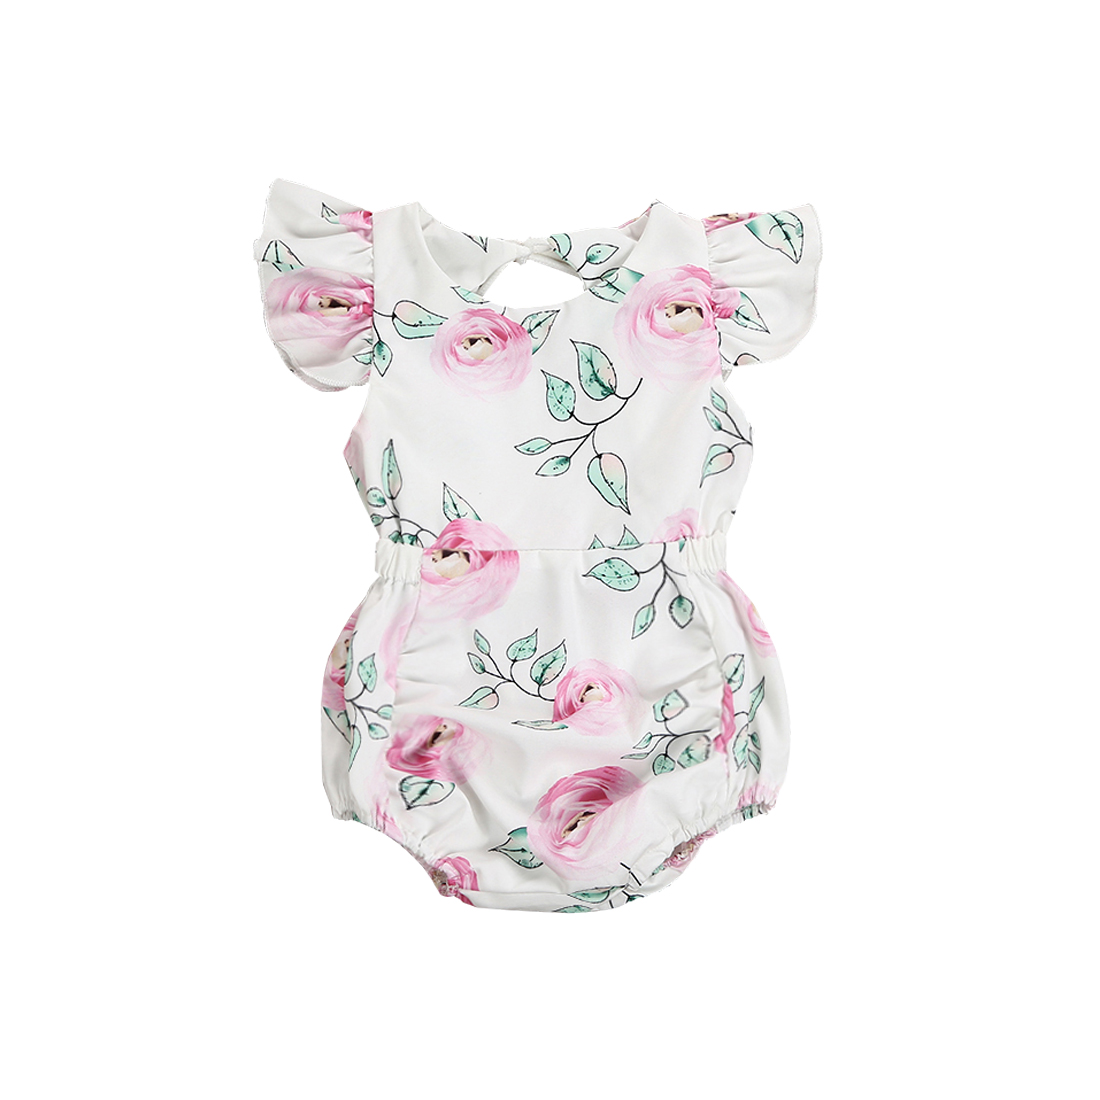 Toddler Newborn Baby Girl Kids Clothes 2018 Cute Floral   Romper   Short Sleeves Jumpsuit Summer Infant Baby Girls Clothing